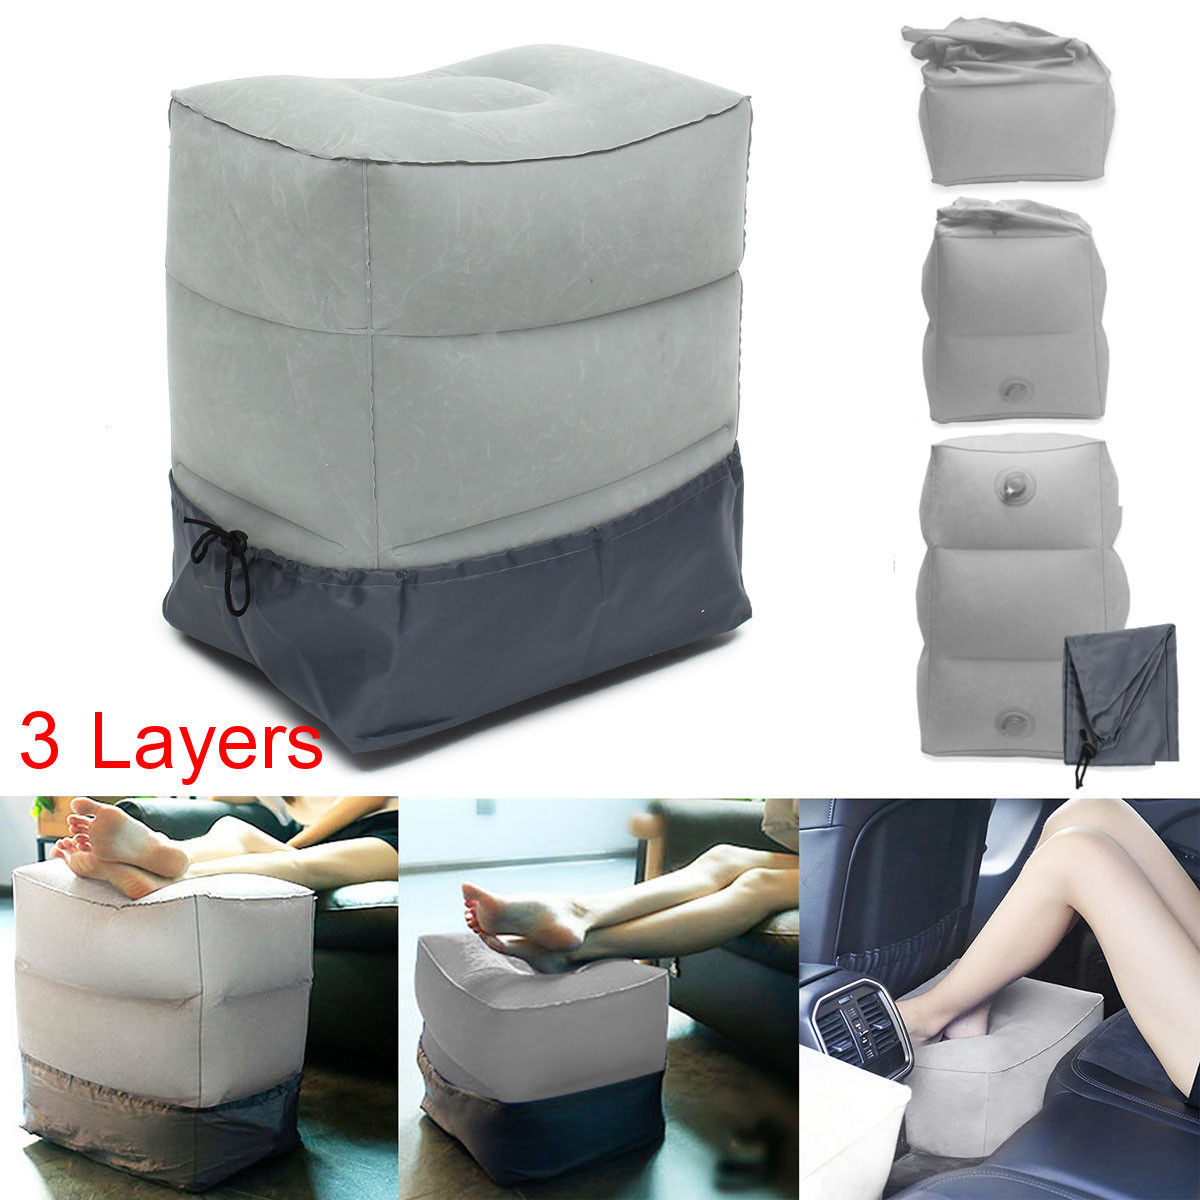 2019 Newest Hot Useful Inflatable Portable Travel Footrest Pillow Plane Train Kids Bed Foot Rest Pad